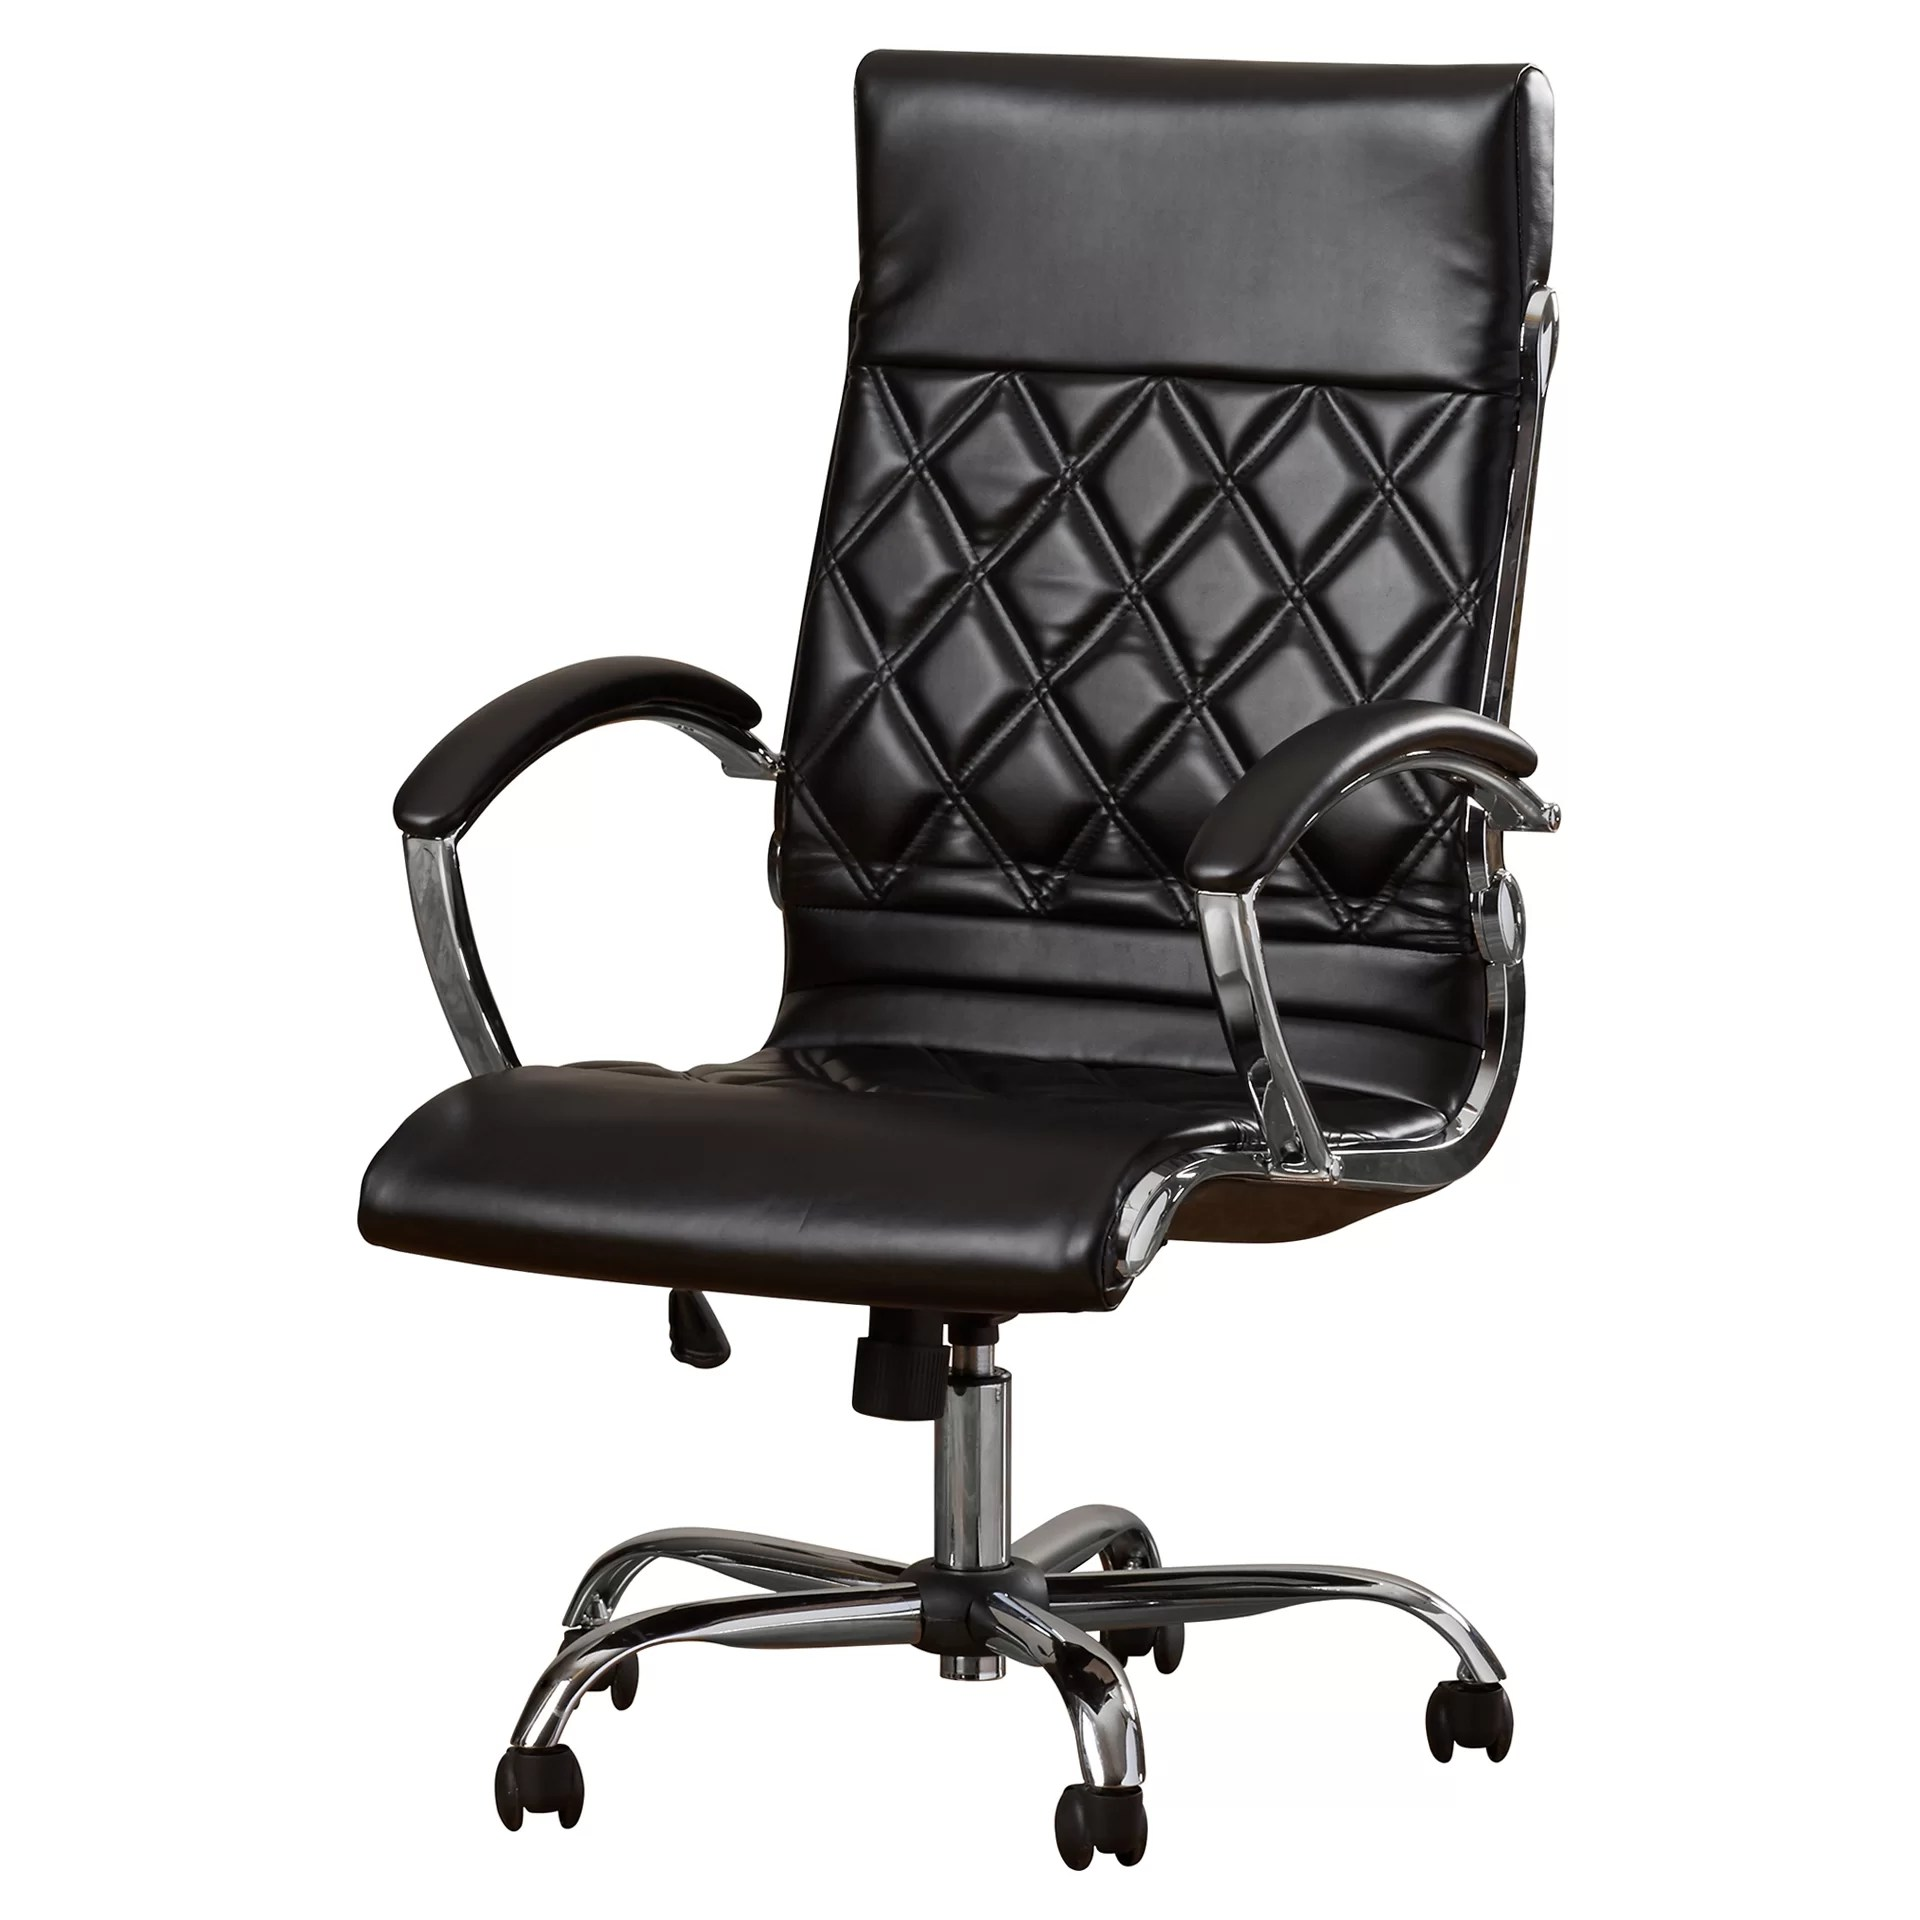 Studio Chairs Brayden Studio Camp Mabry Leather Executive Chair